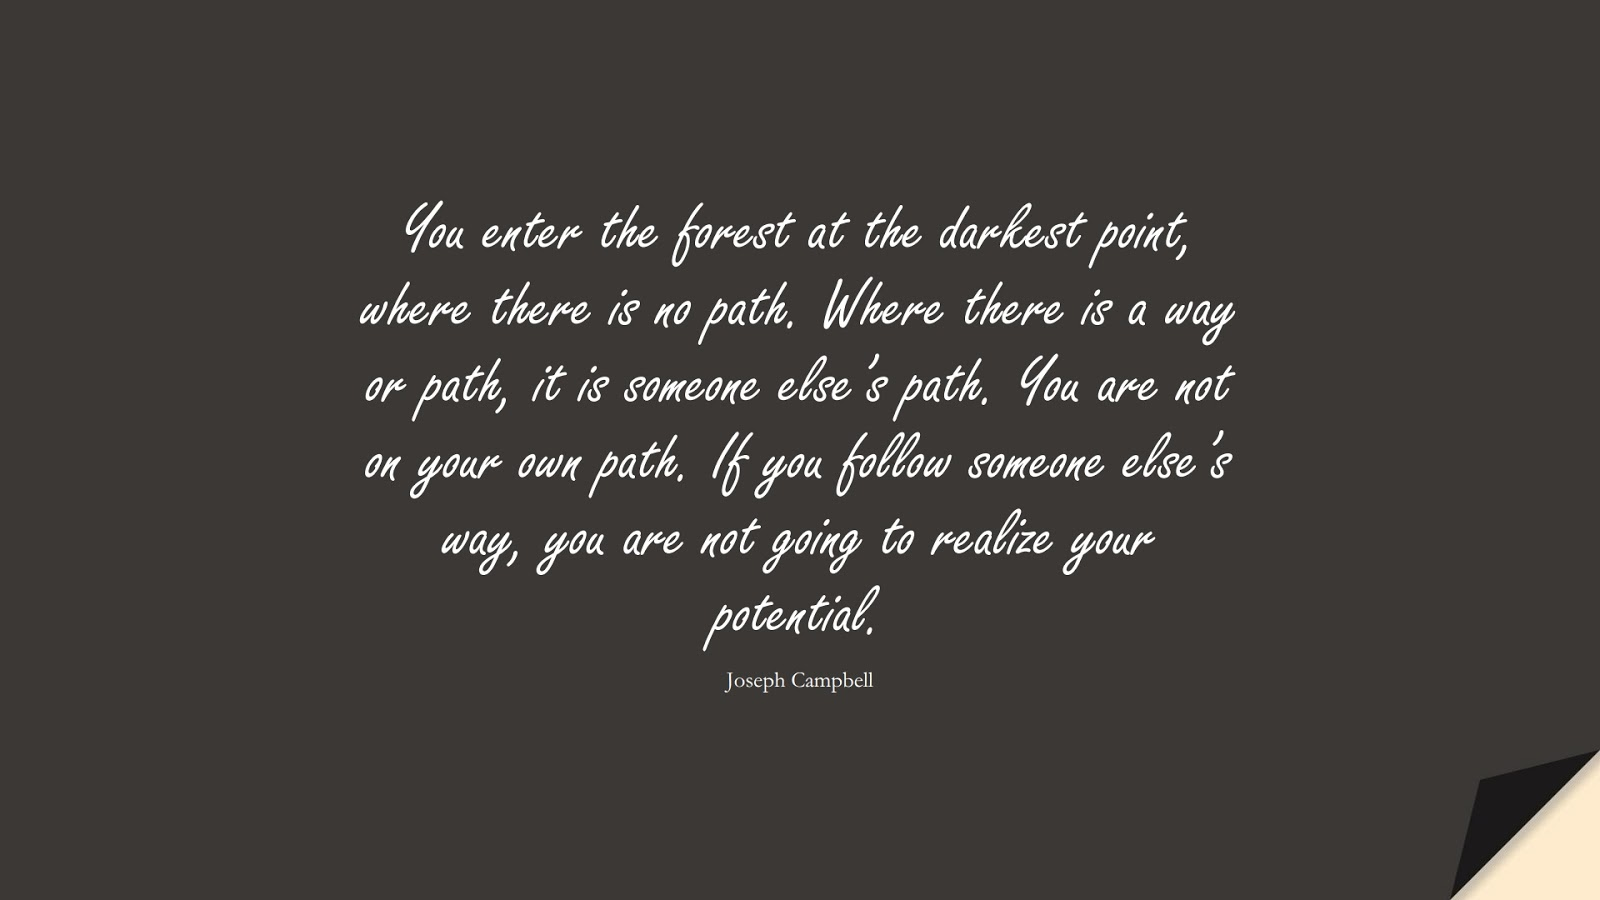 You enter the forest at the darkest point, where there is no path. Where there is a way or path, it is someone else's path. You are not on your own path. If you follow someone else's way, you are not going to realize your potential. (Joseph Campbell);  #BeYourselfQuotes